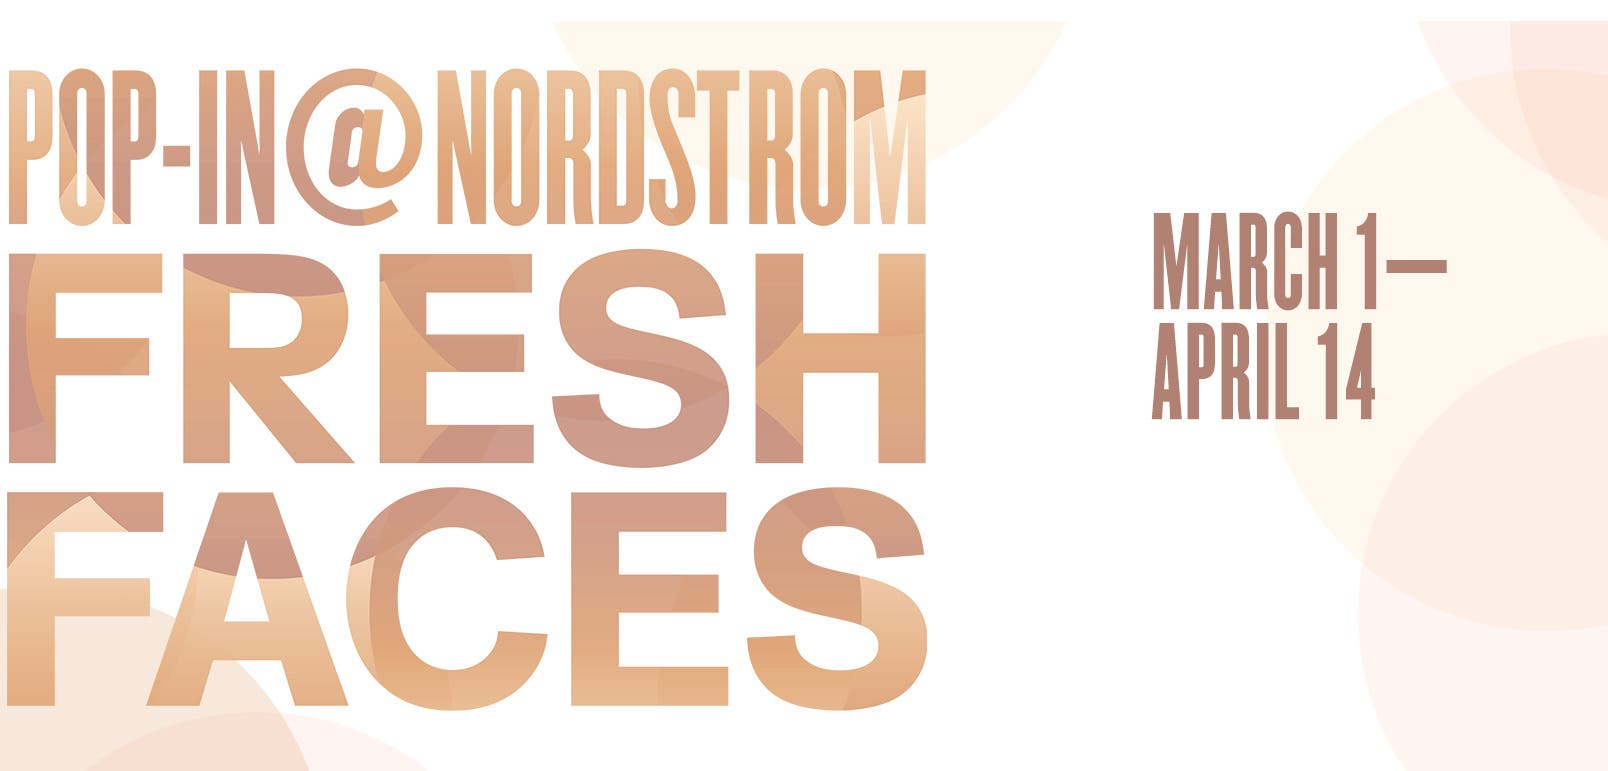 Pop-In@Nordstrom Fresh Faces. March 1 to April 14.